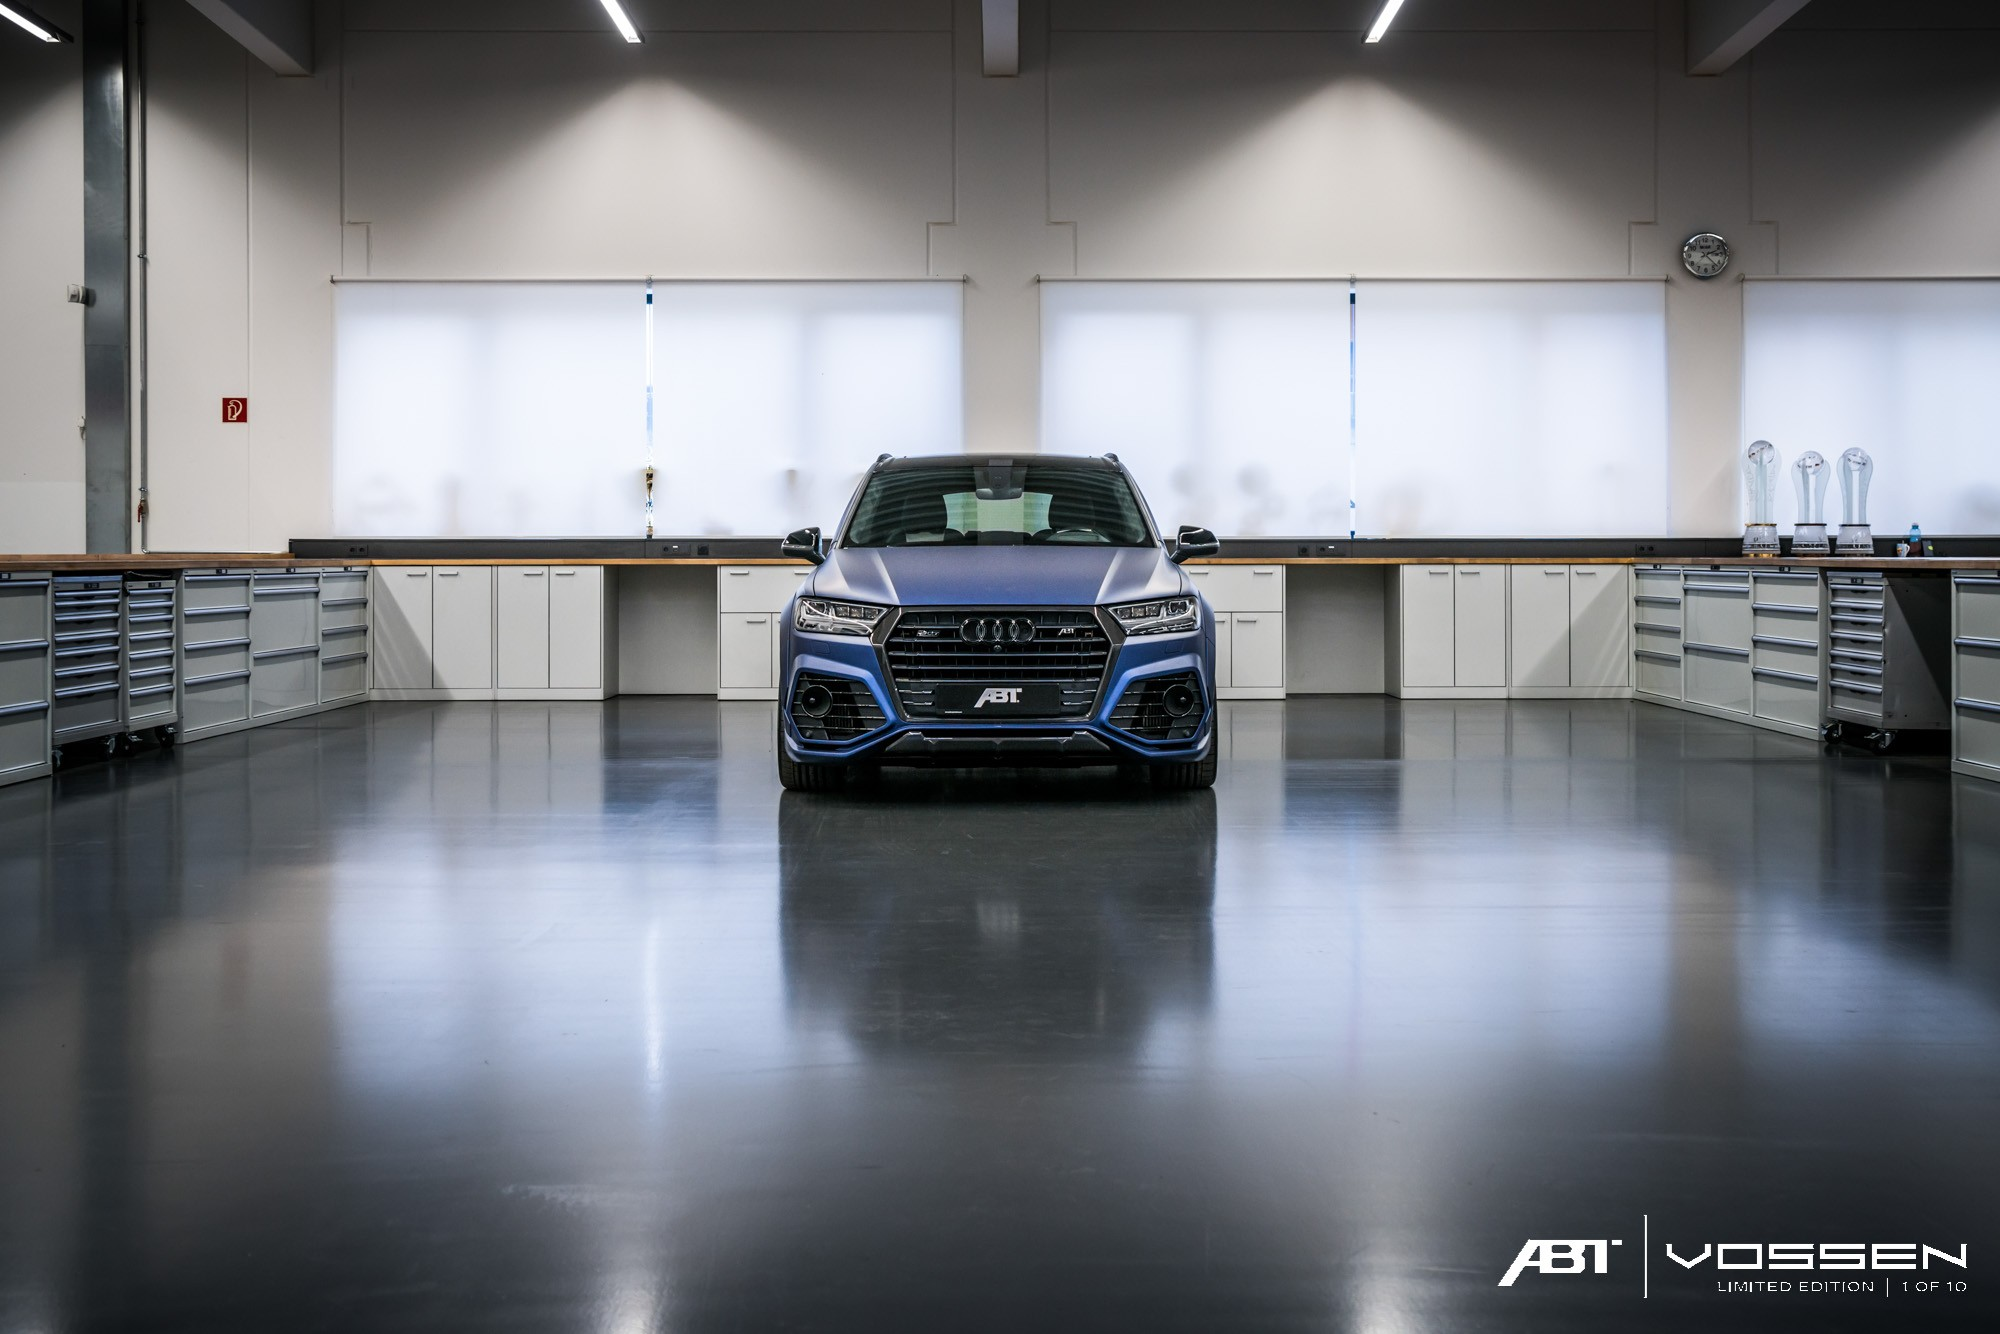 Audi Q7 And Sq7 Get Abt Widebody Kit Vossen Forged Wheels Headlight Wiring Harness Body